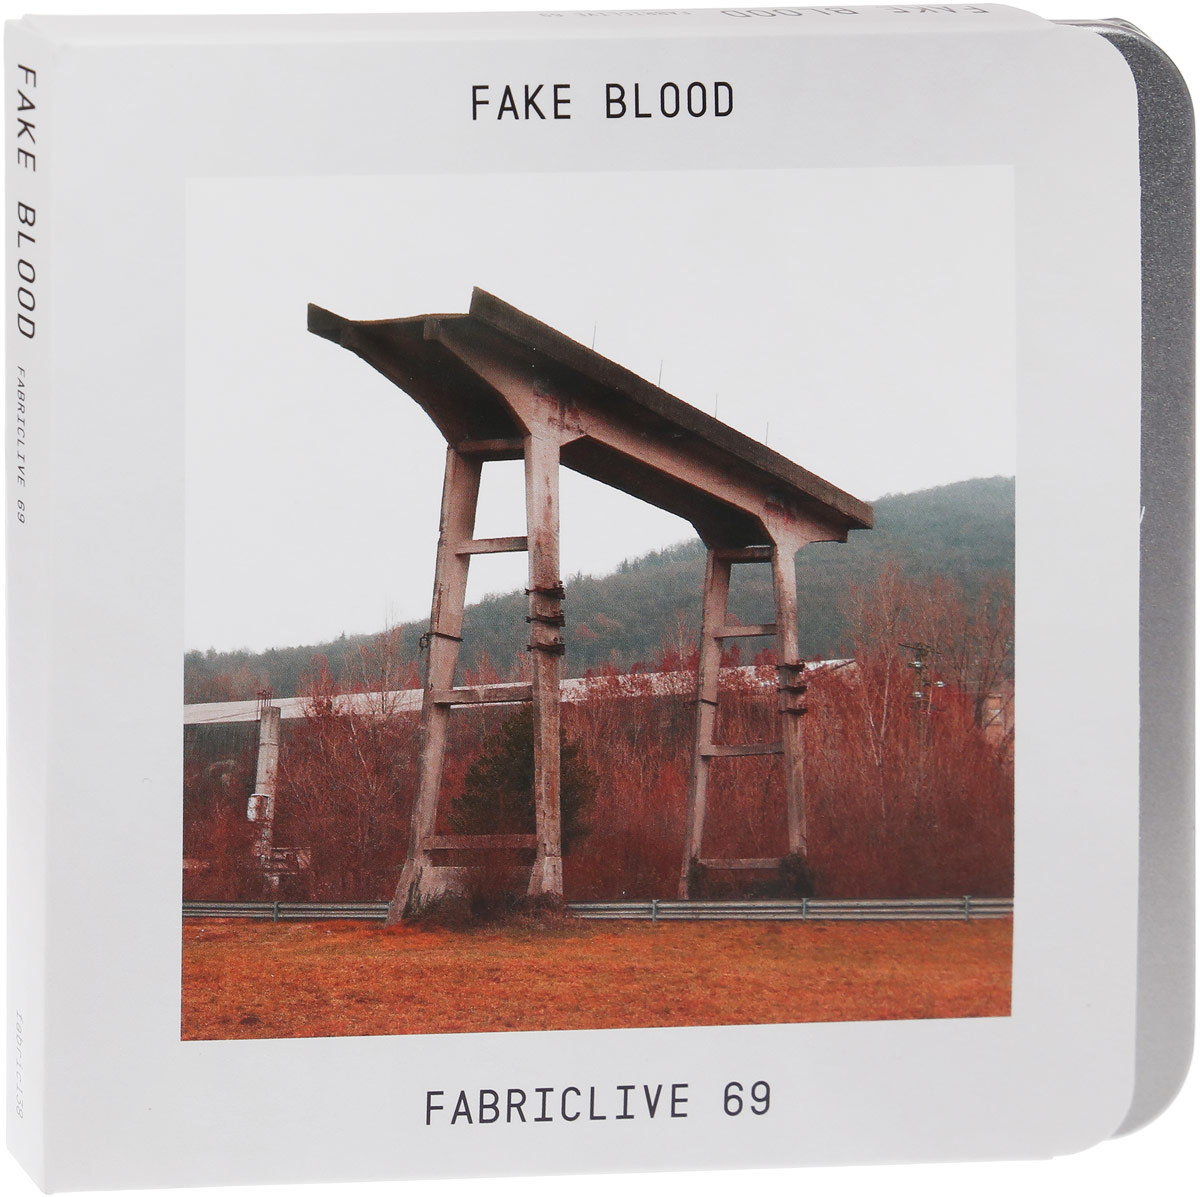 Fake Blood Blood. Fabriclive 69